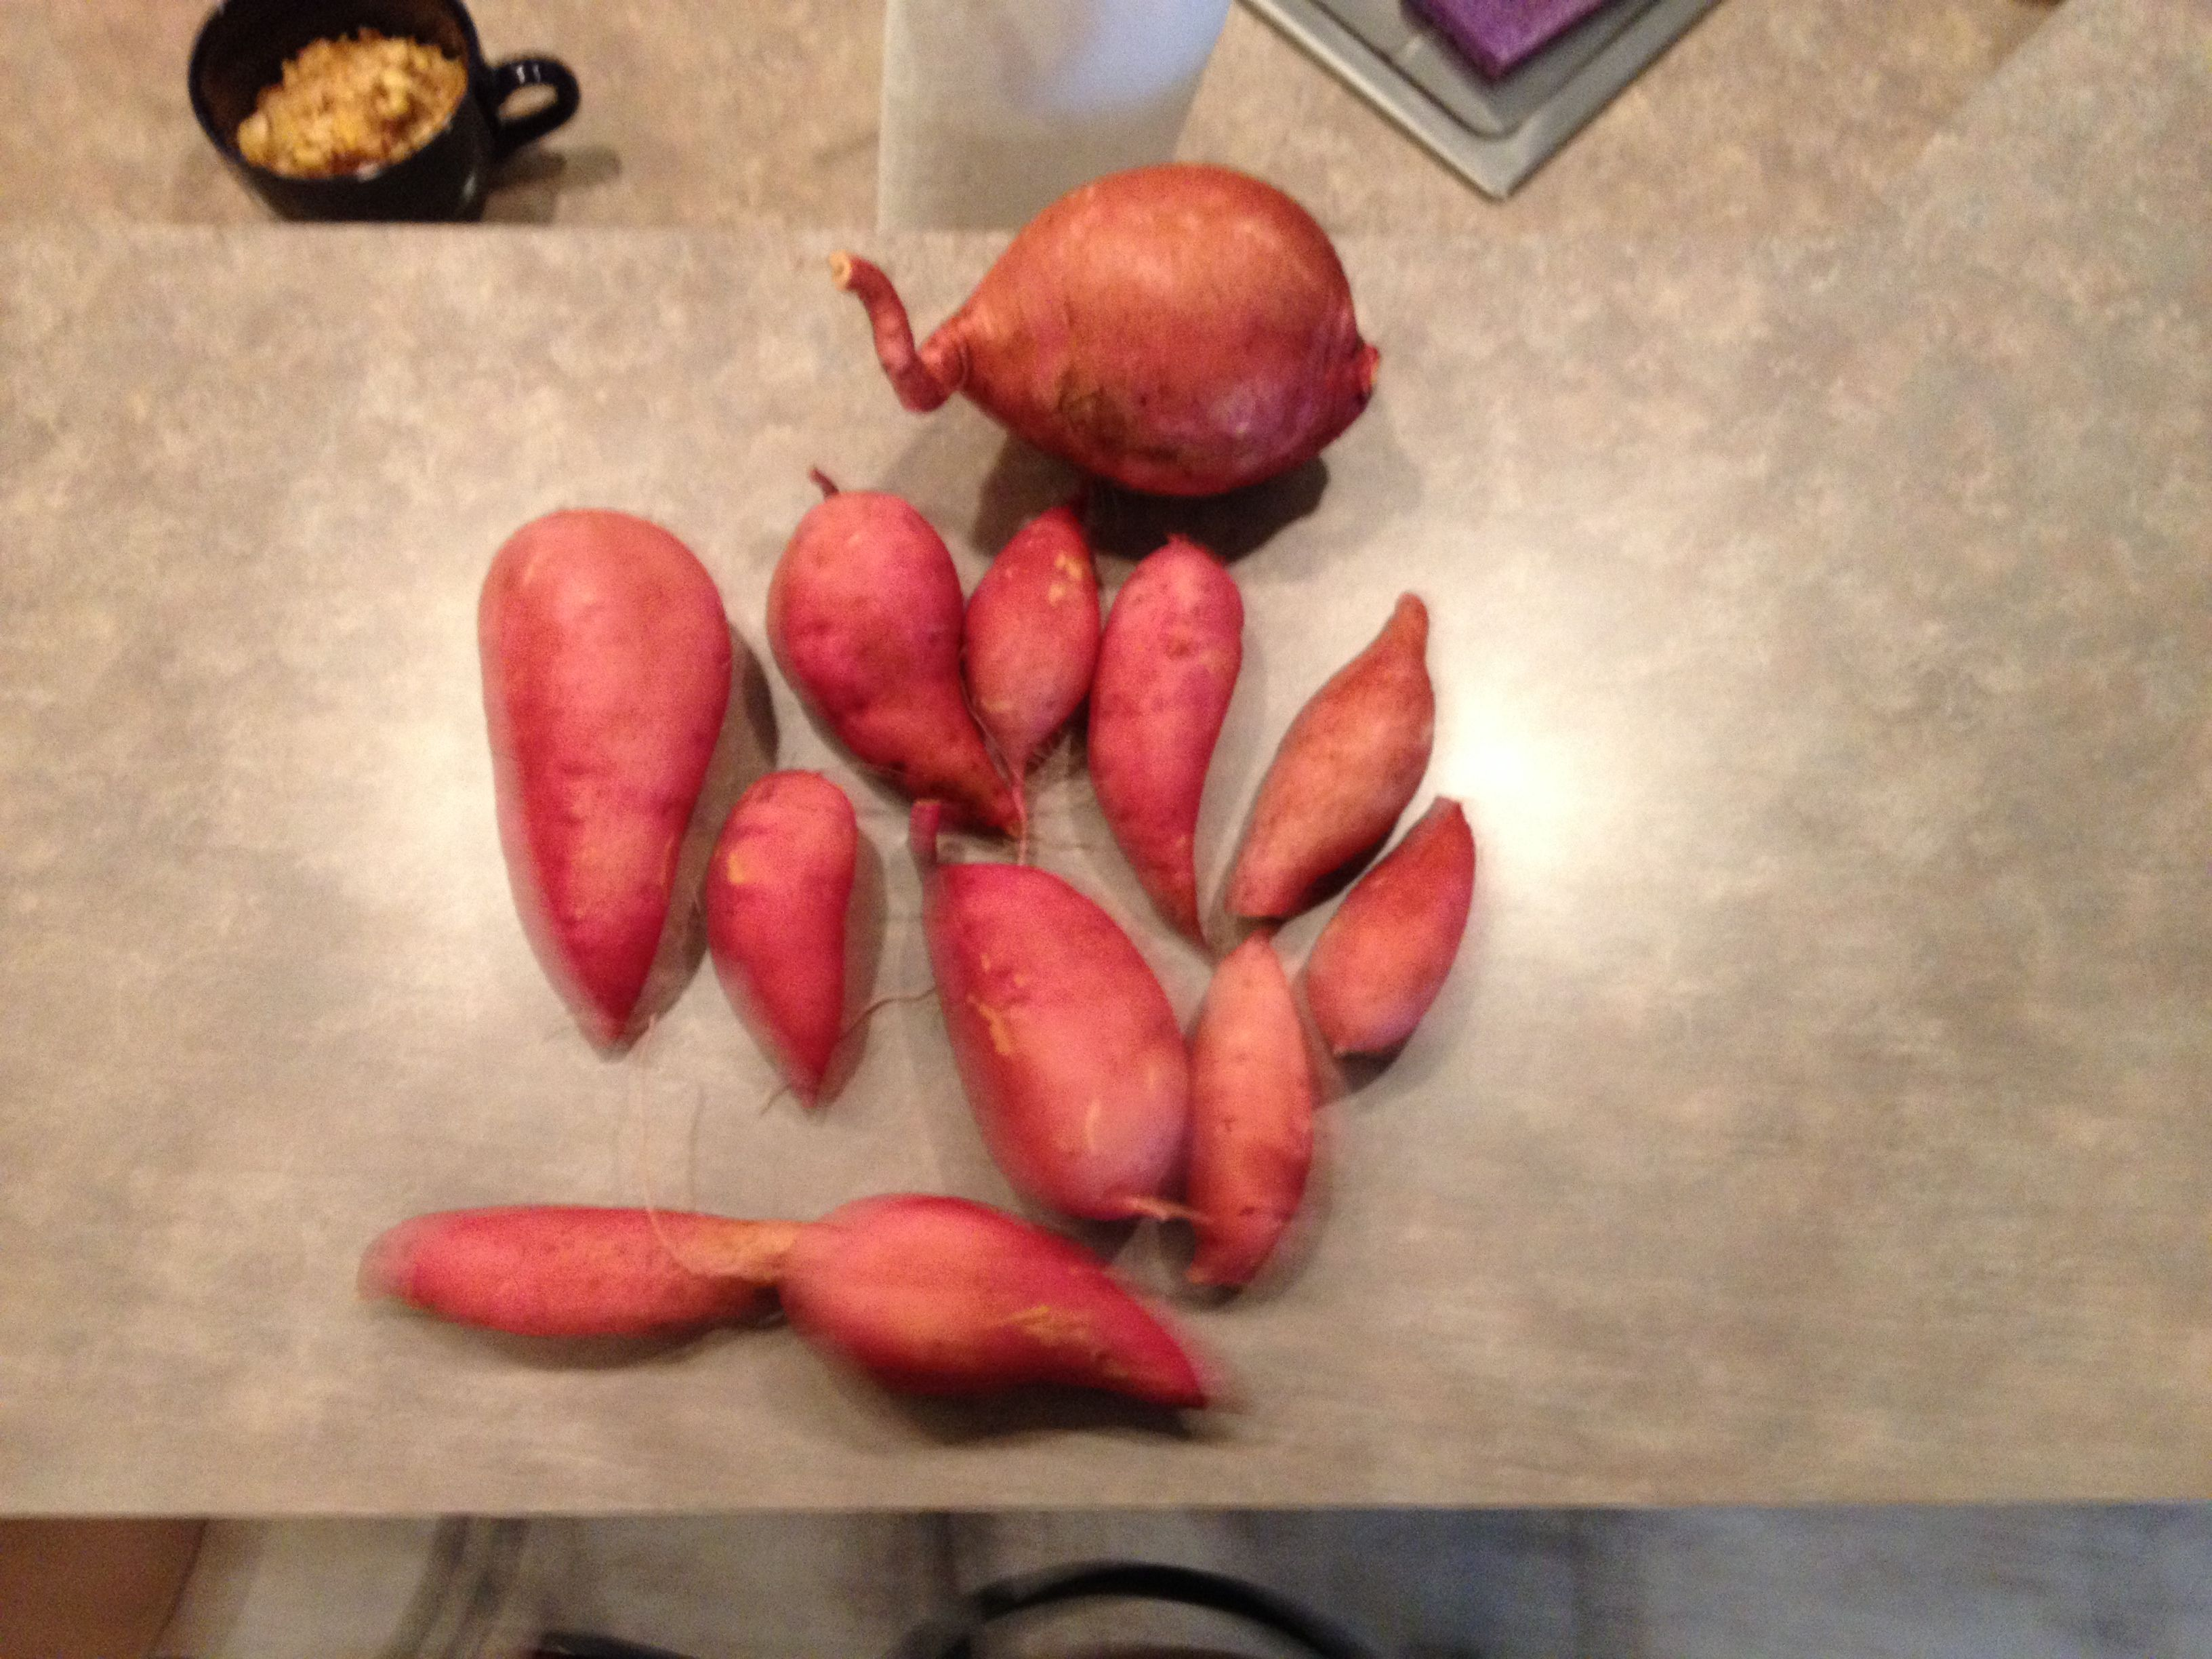 Today's sweet potatoes harvest from the Barefoot Garden